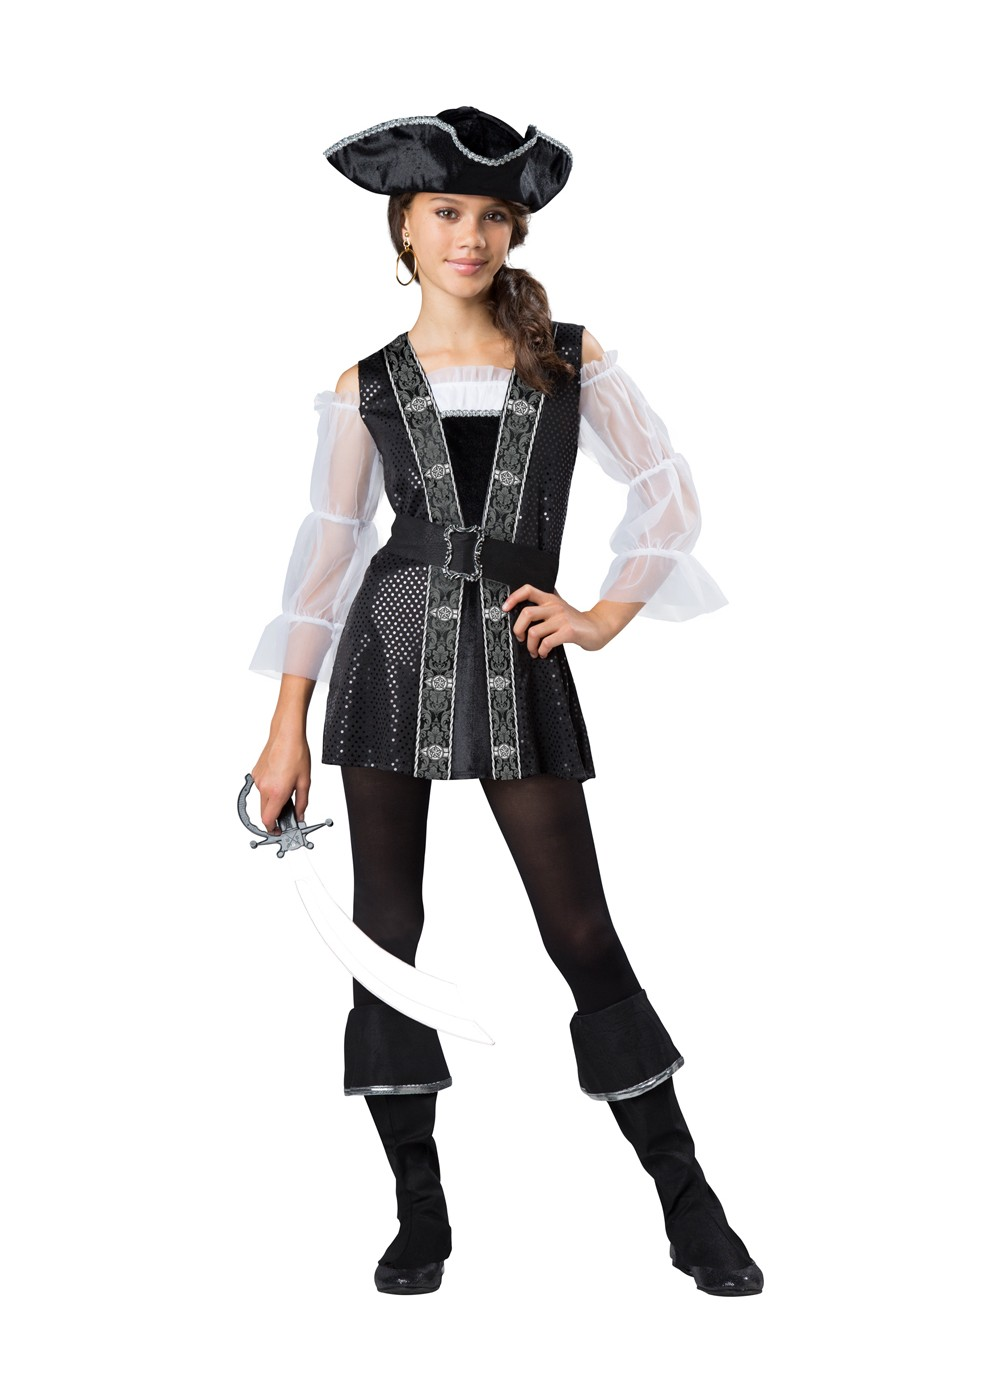 Tween girl pirate costume - photo#5